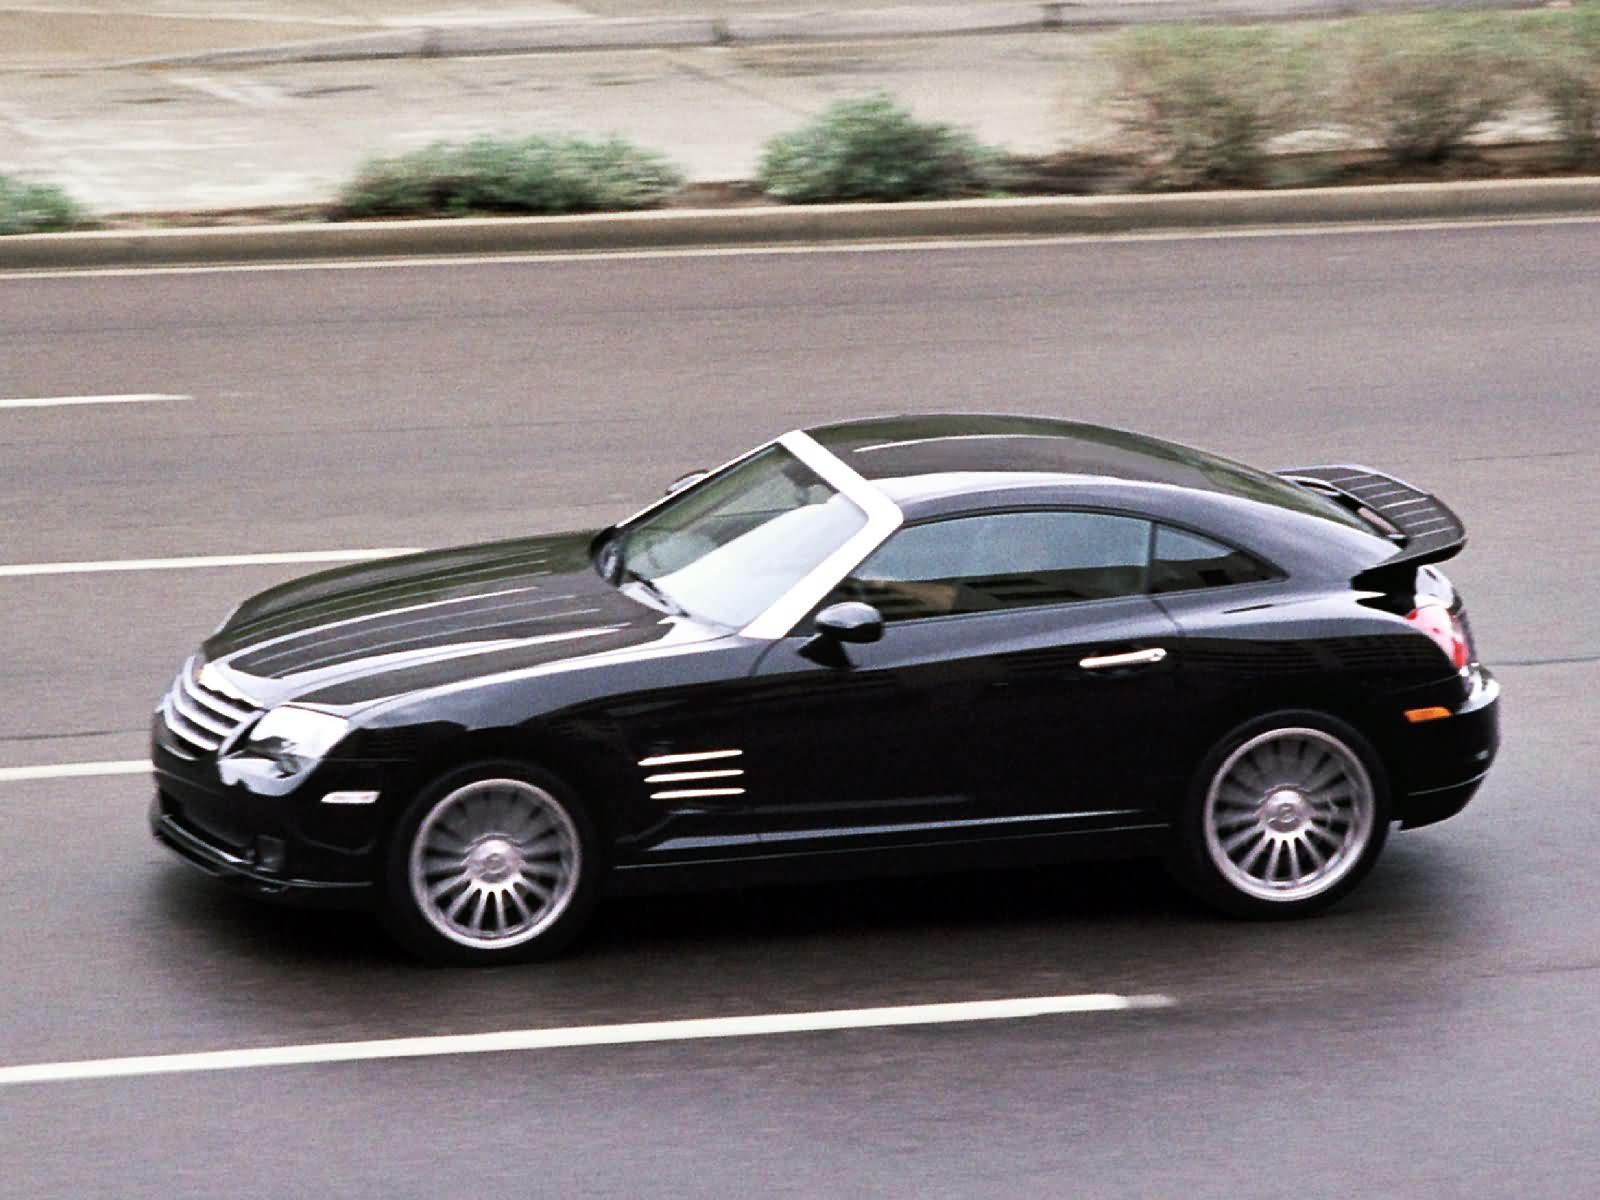 srt sports car cars review speed s top chrysler crossfire